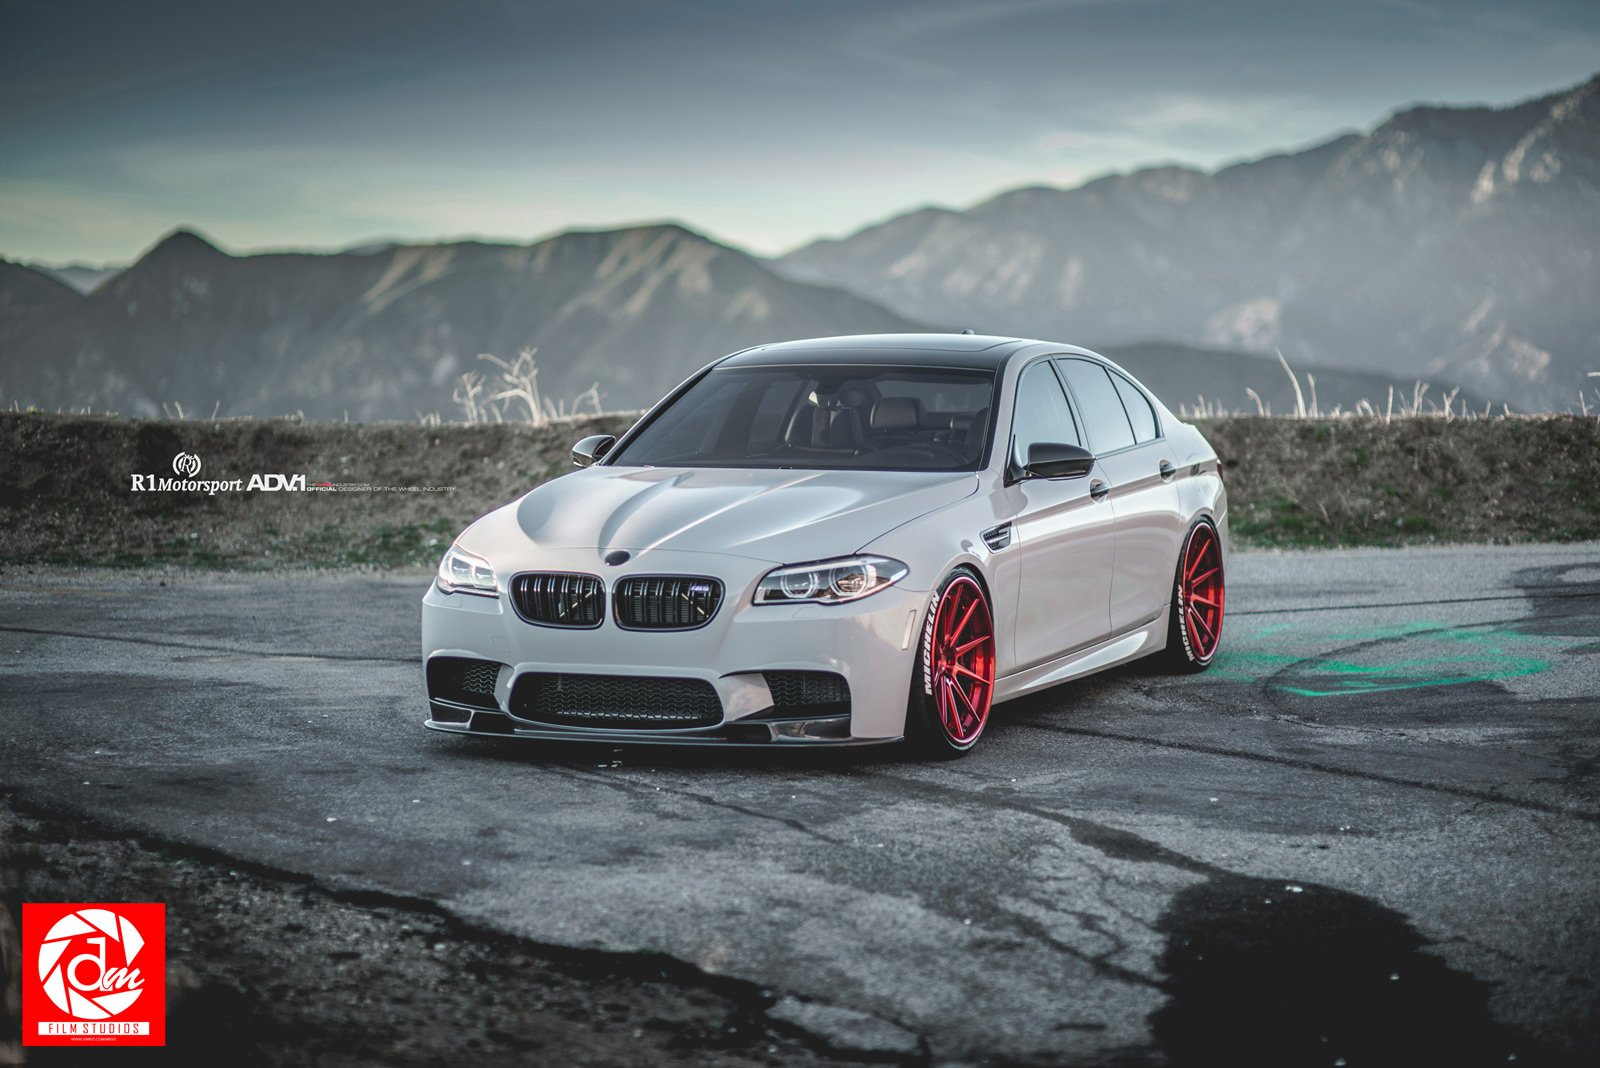 2015 adv1 wheels bmw m5 f10 cars coupe tuning wallpaper background 1600x1068